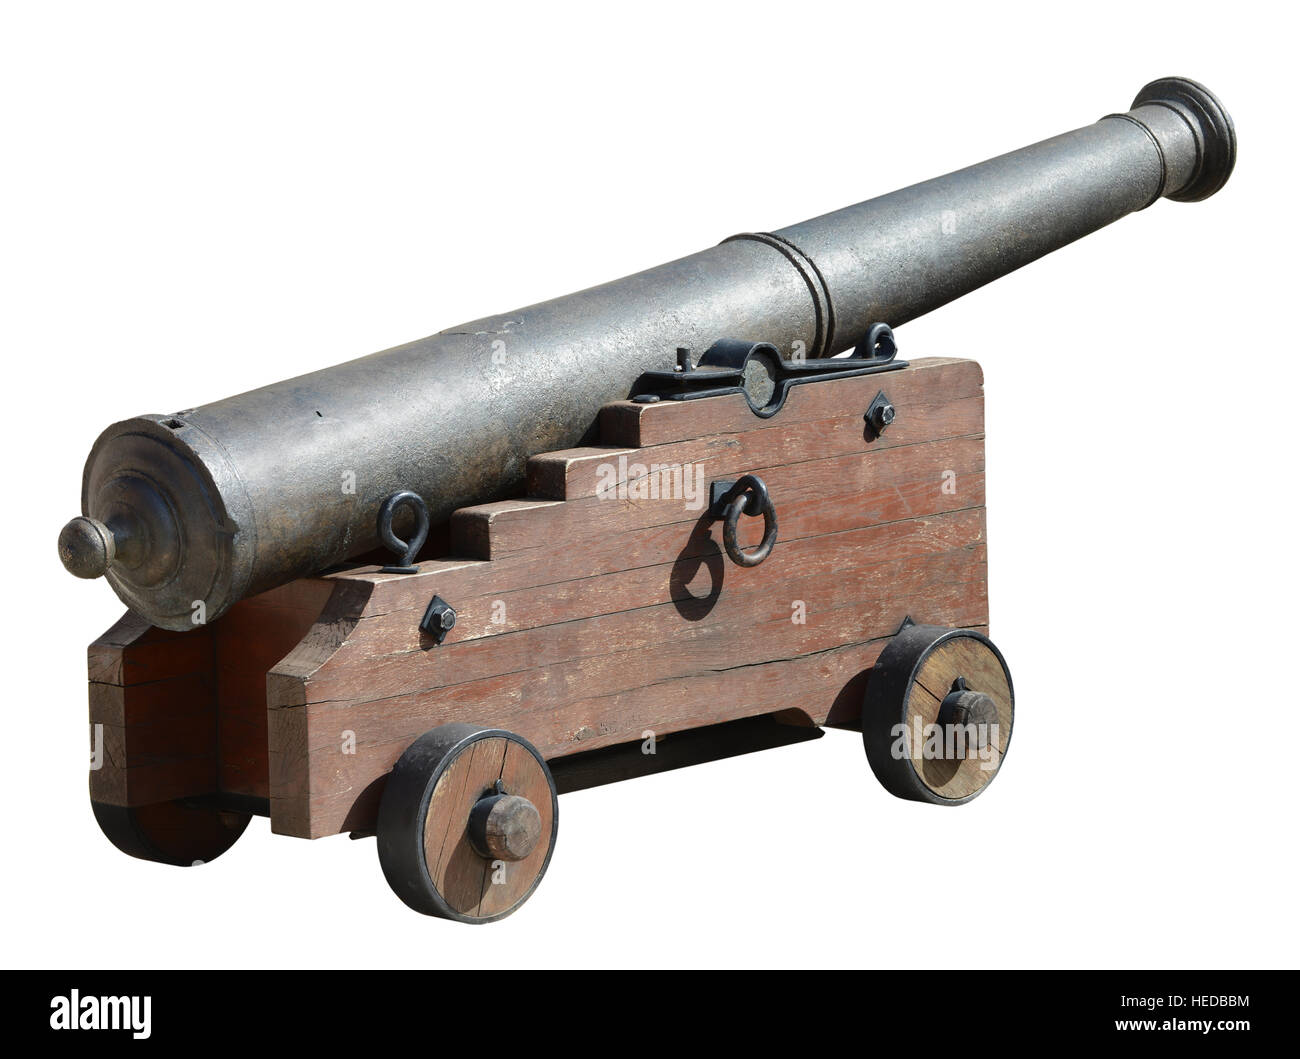 Ancient medieval cannon on wheels, isolated on white. - Stock Image